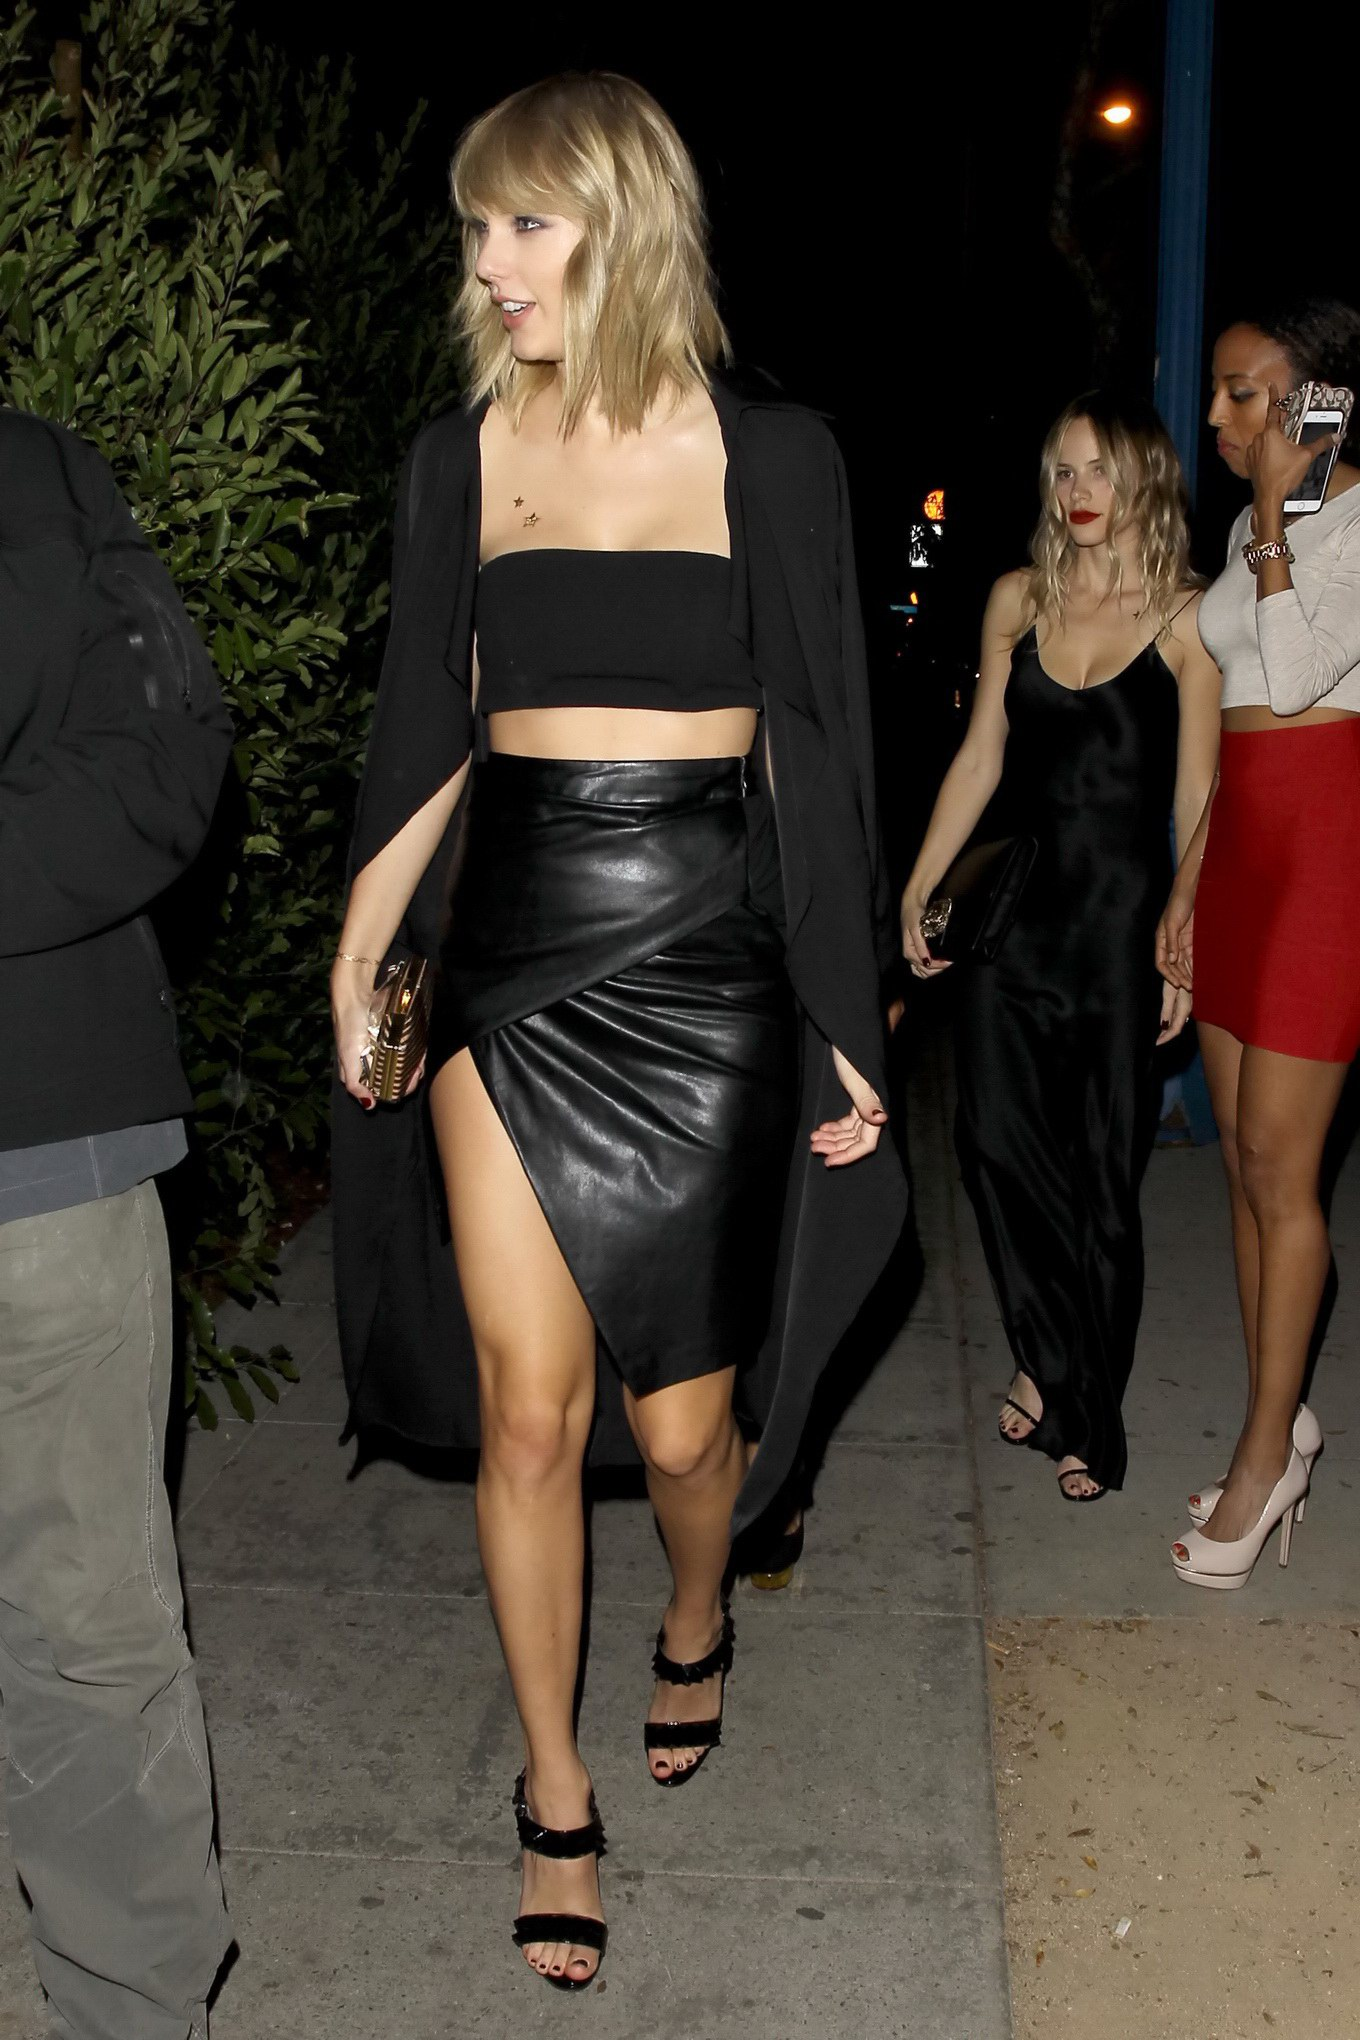 Taylor Swift and Halston Sage arriving at Drake's Birthday Party in ...: www.celeb6free.com/pics/celeb4709/taylor_swift_free_freeones.html